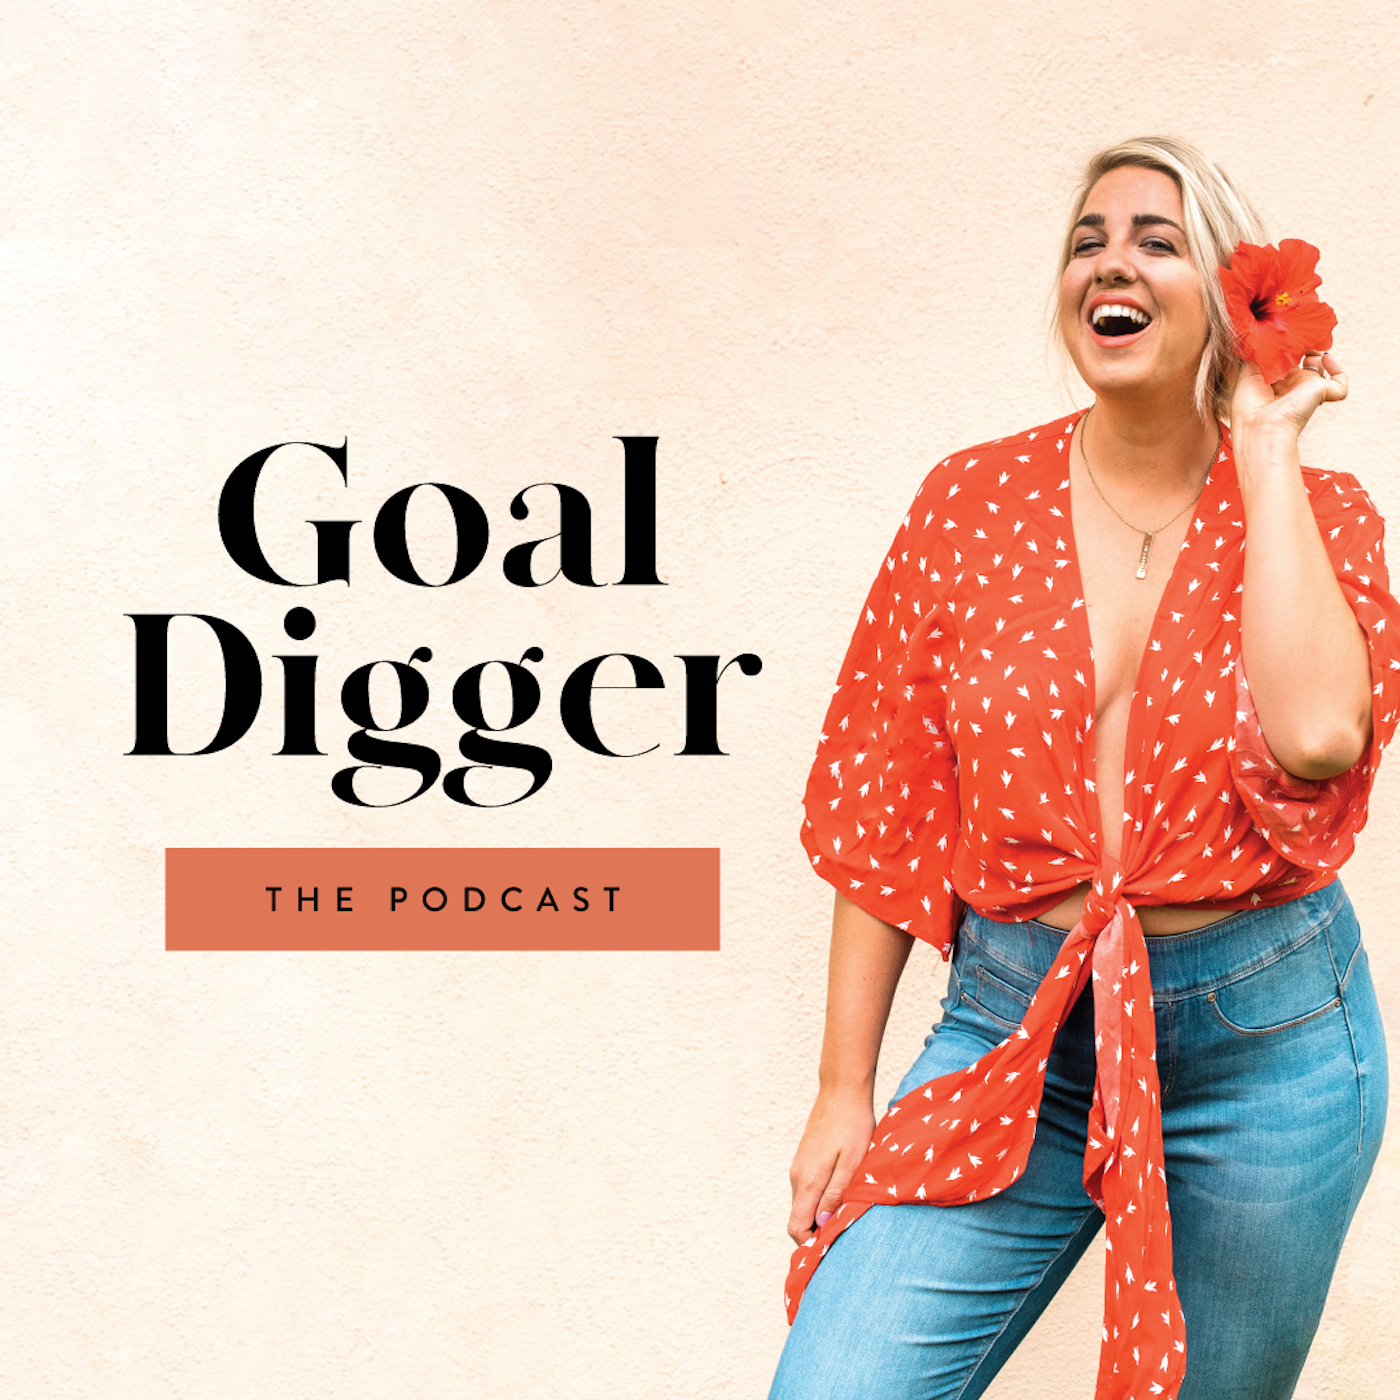 The Goal Digger Podcast | Listen via Stitcher for Podcasts